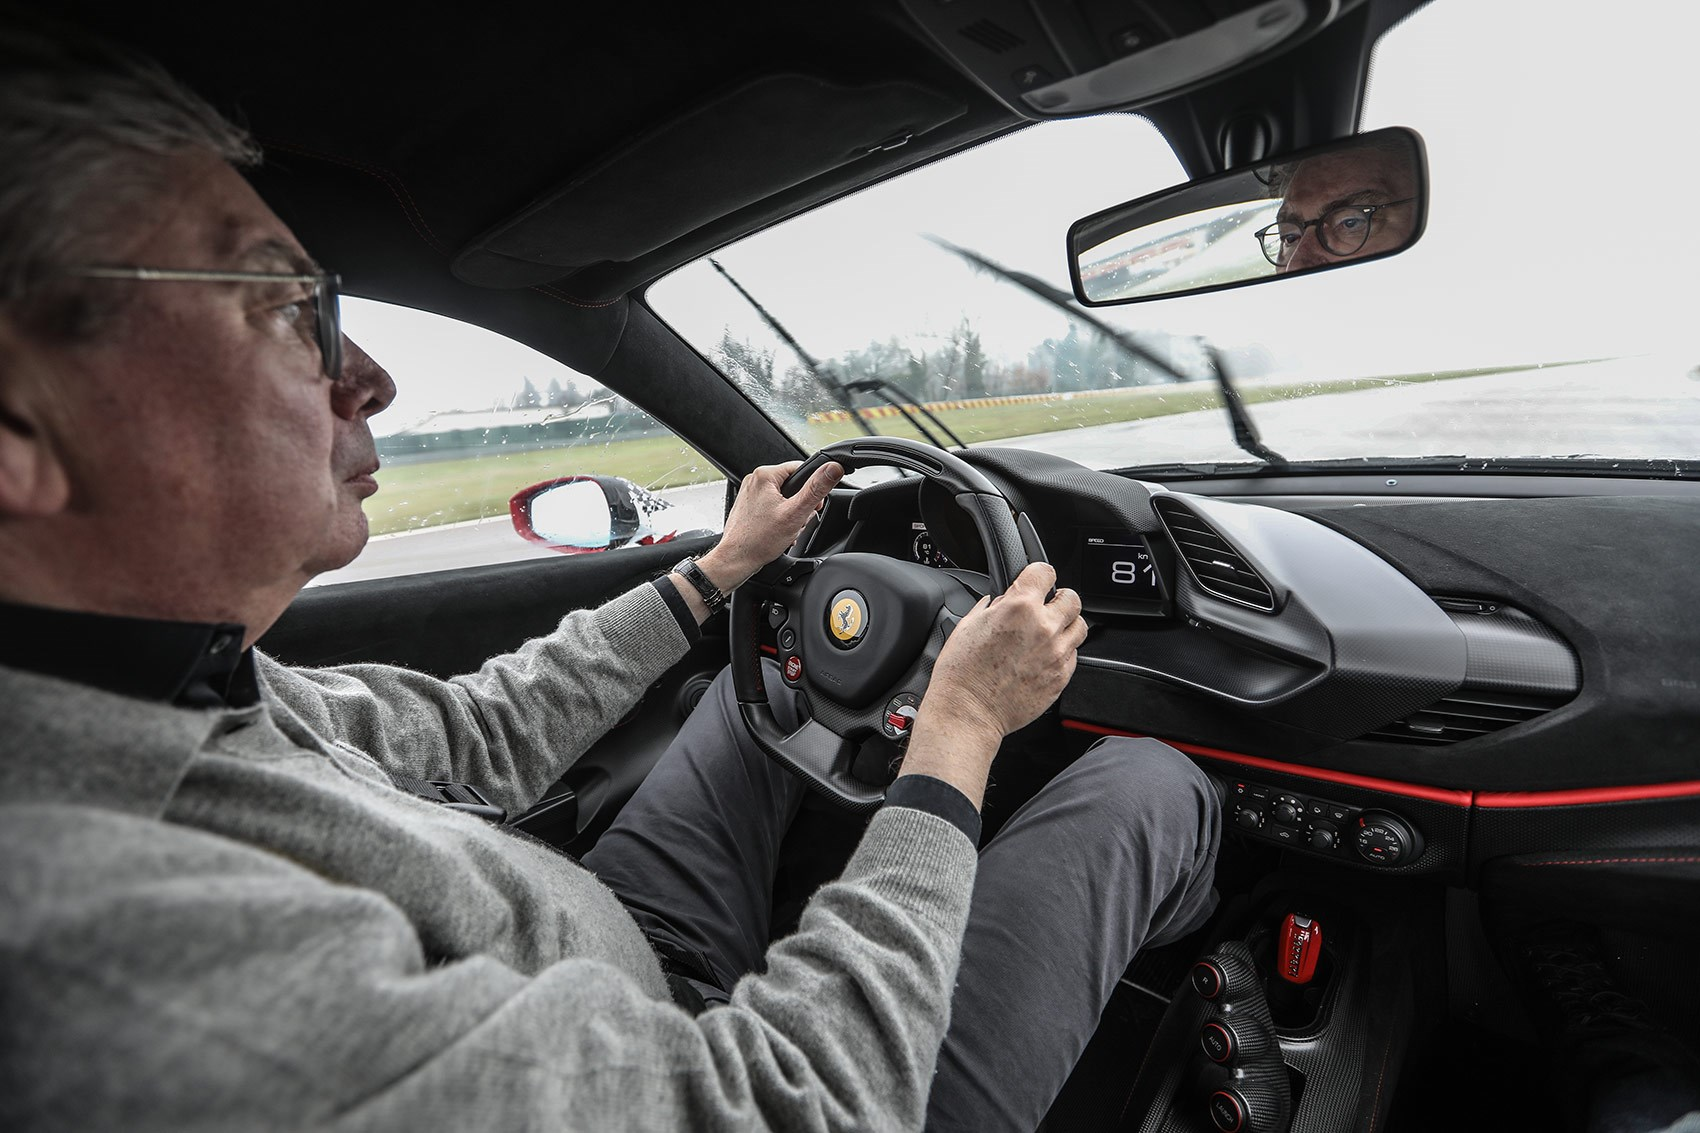 Our Georg Kacher drives the Ferrari 488 Pista on a very cold, snowy day at Fiorano